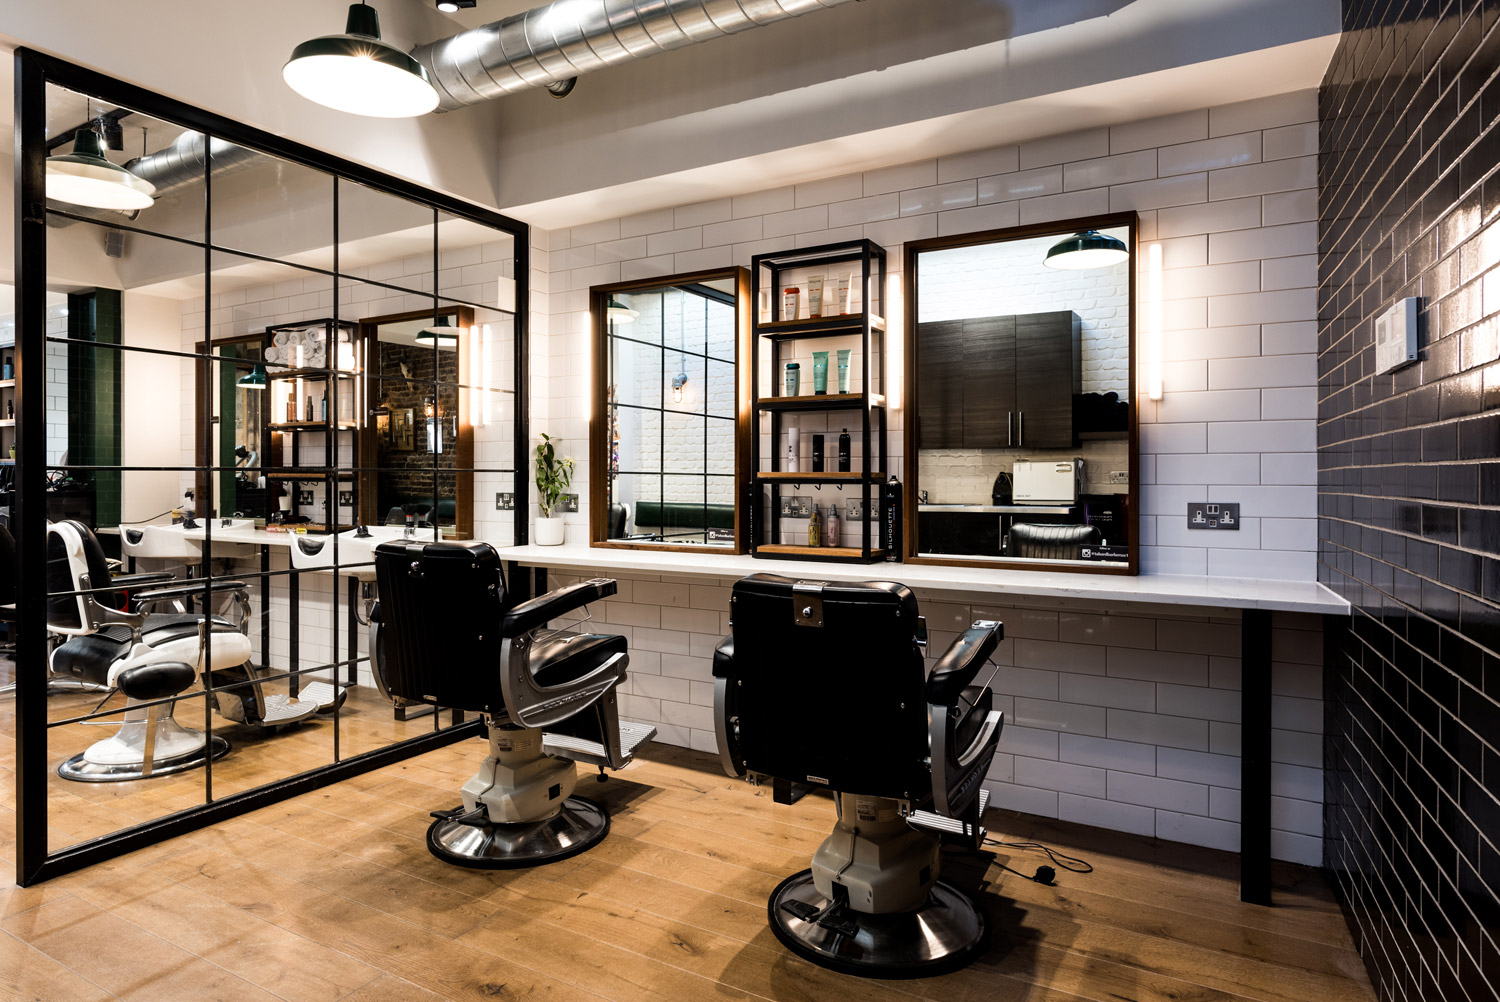 Tabard Barbers is also a women's hairdresser and salon. Located in Tabard Street, London SE1, it offers the very best professional hair styling, cuts, maintenance & treatments in the Borough.